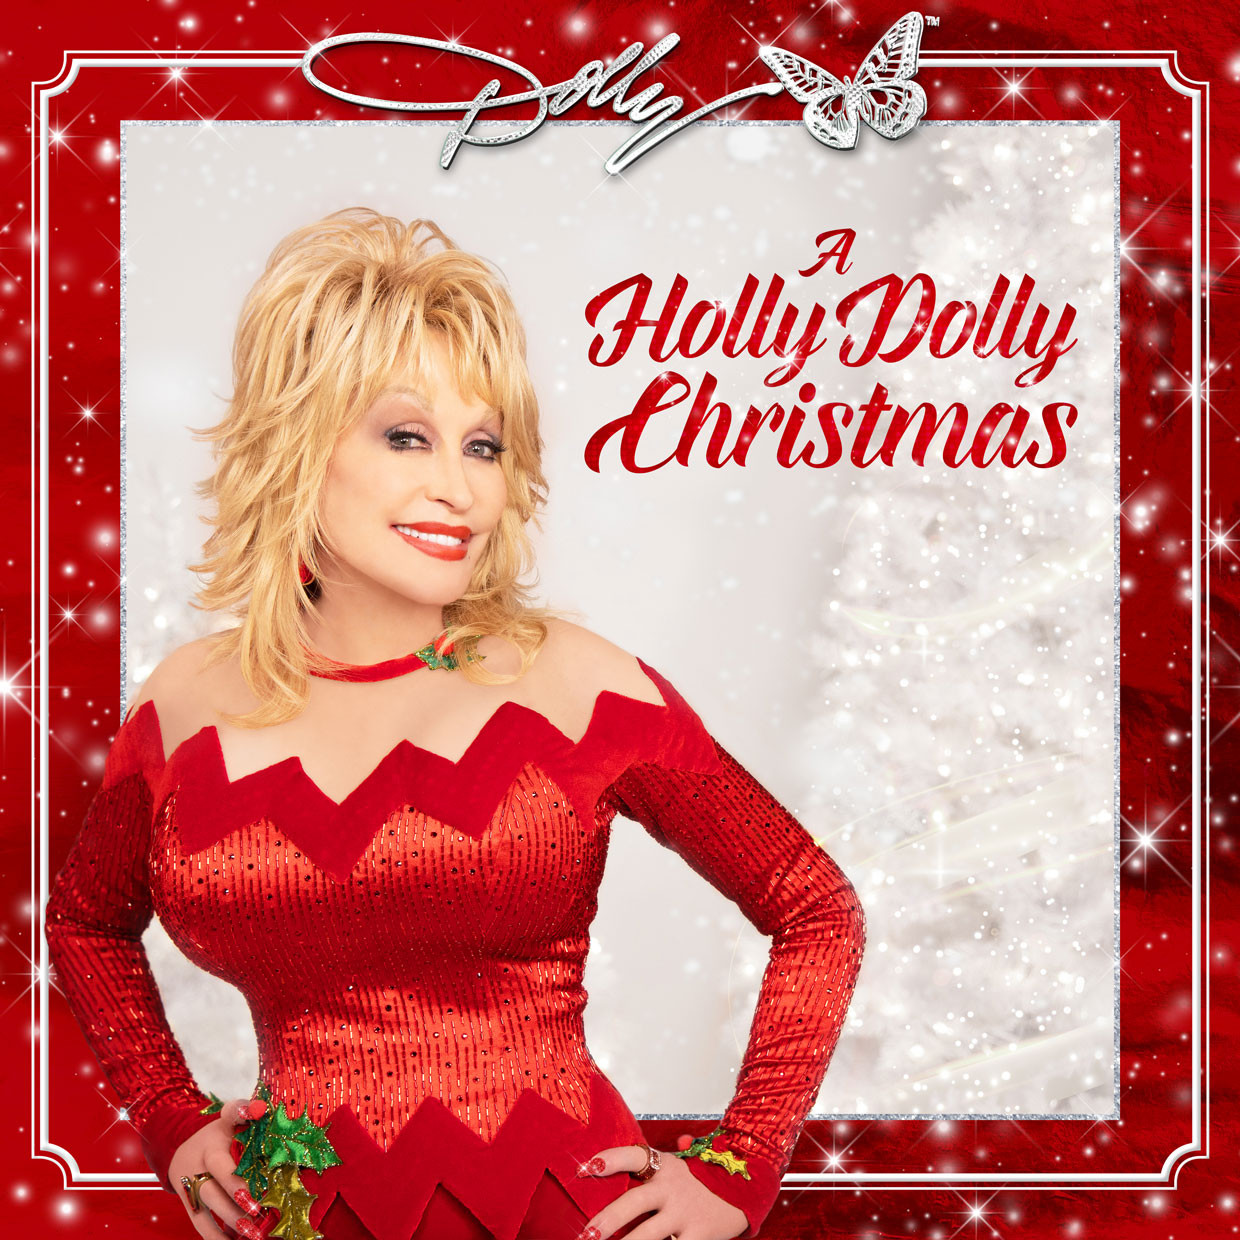 Dolly-Parton-A-Holly-Dolly-Christmas-bil